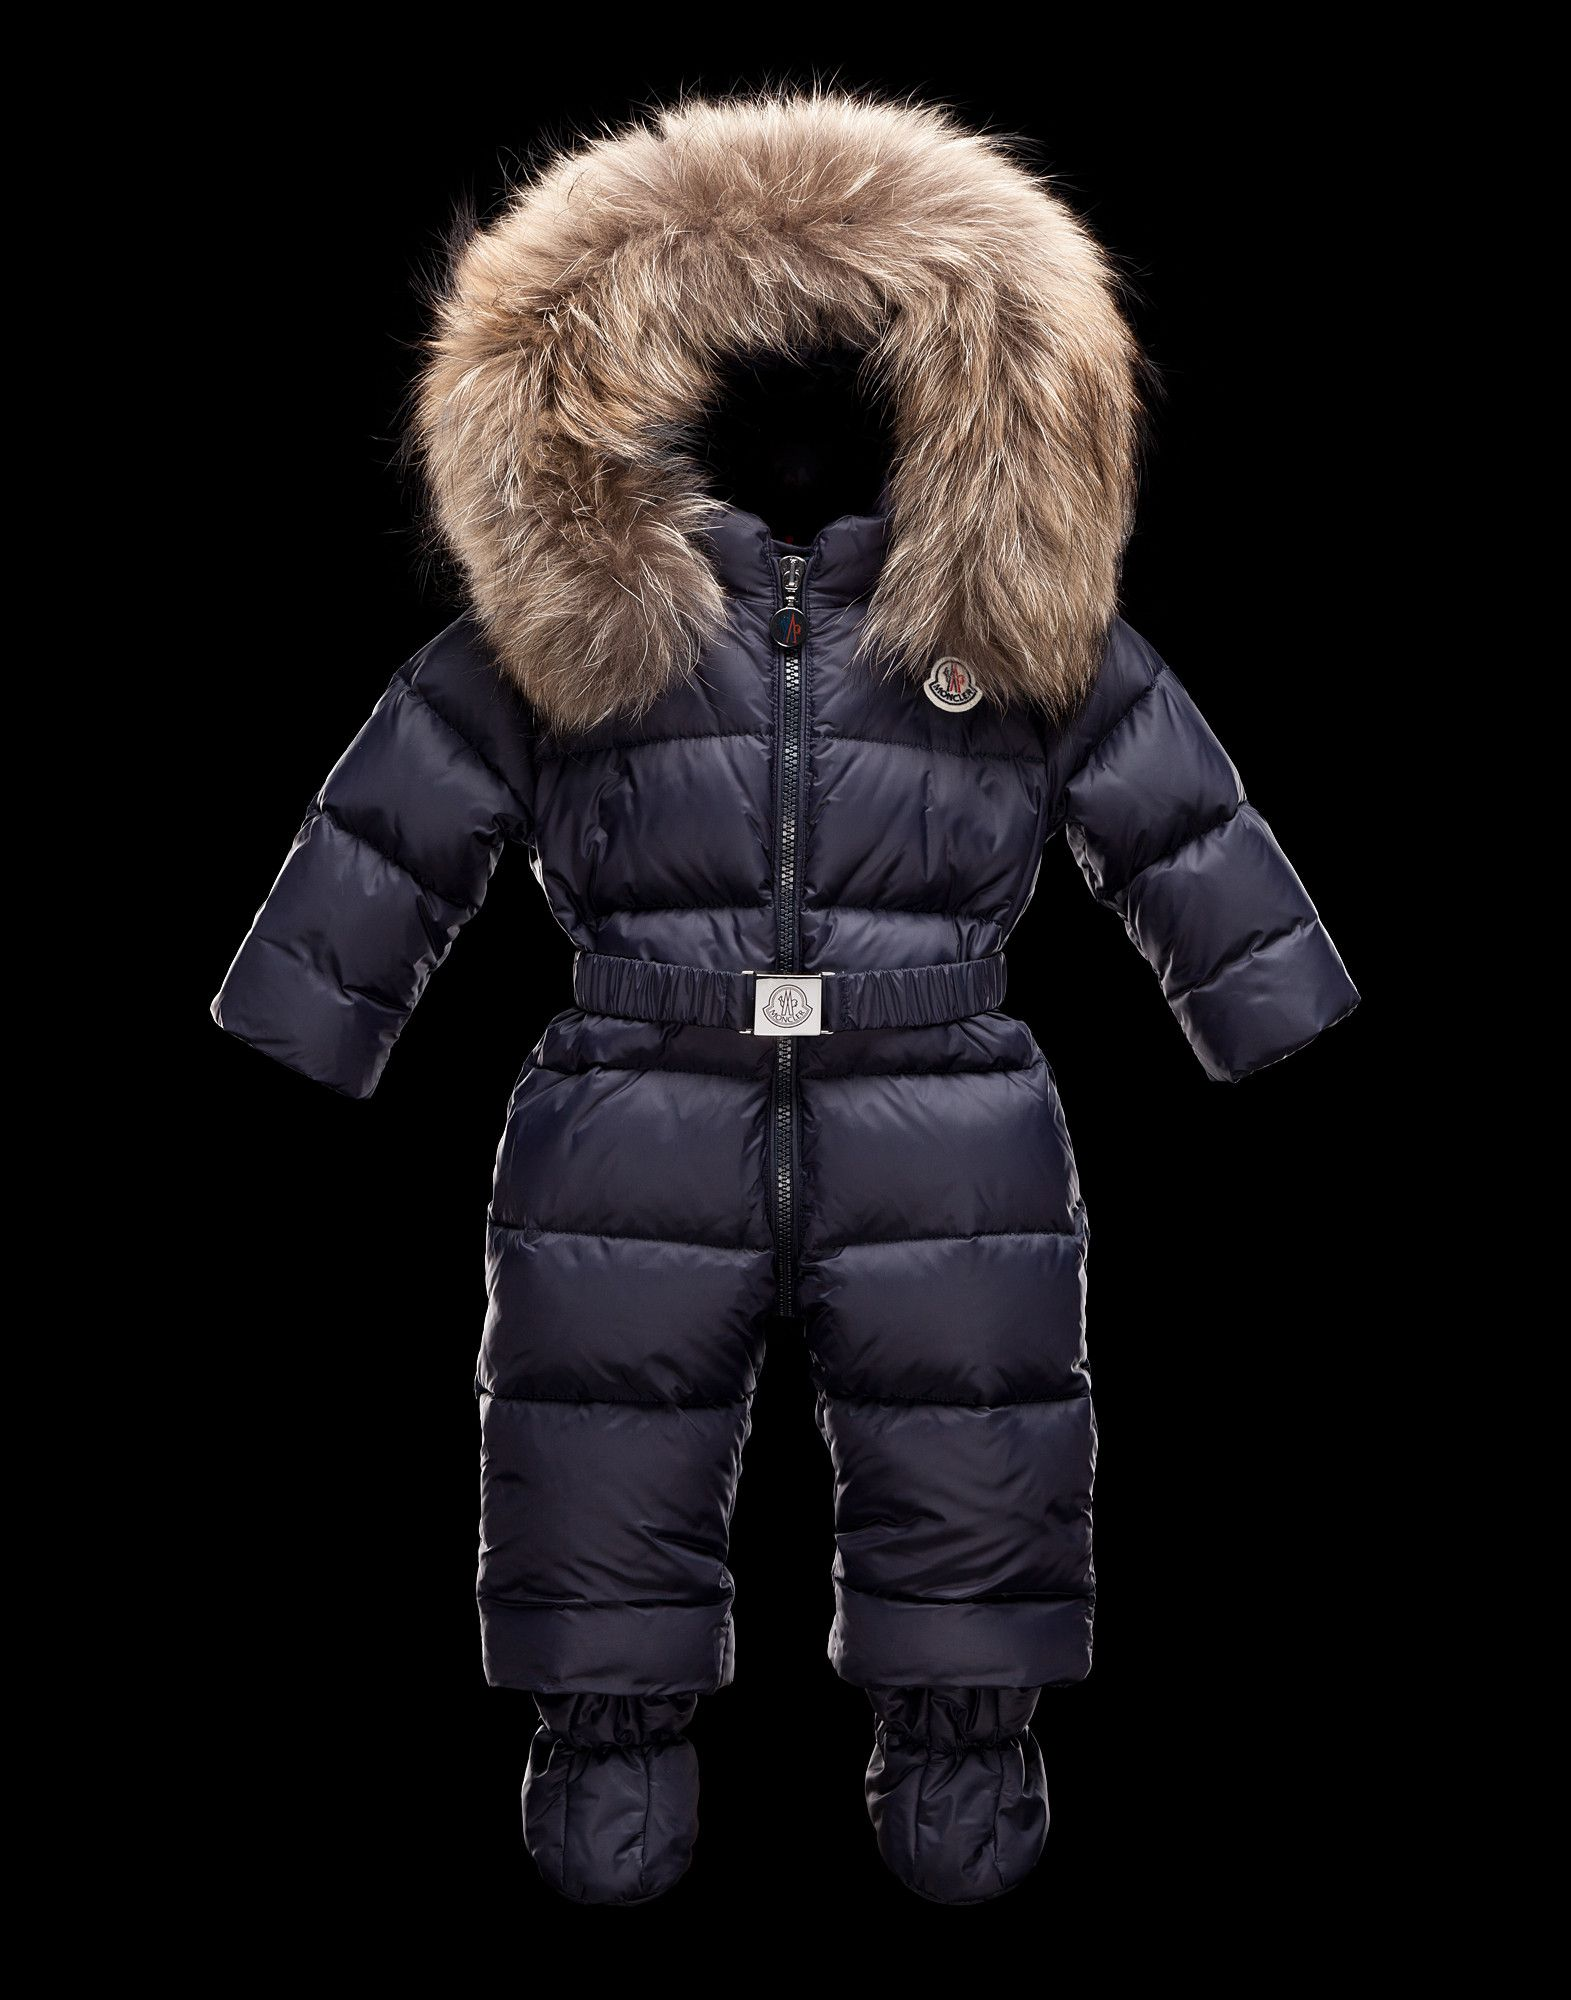 802a10765 MONCLER ENFANT - Autumn Winter 12-13 - OUTERWEAR - All in one ...